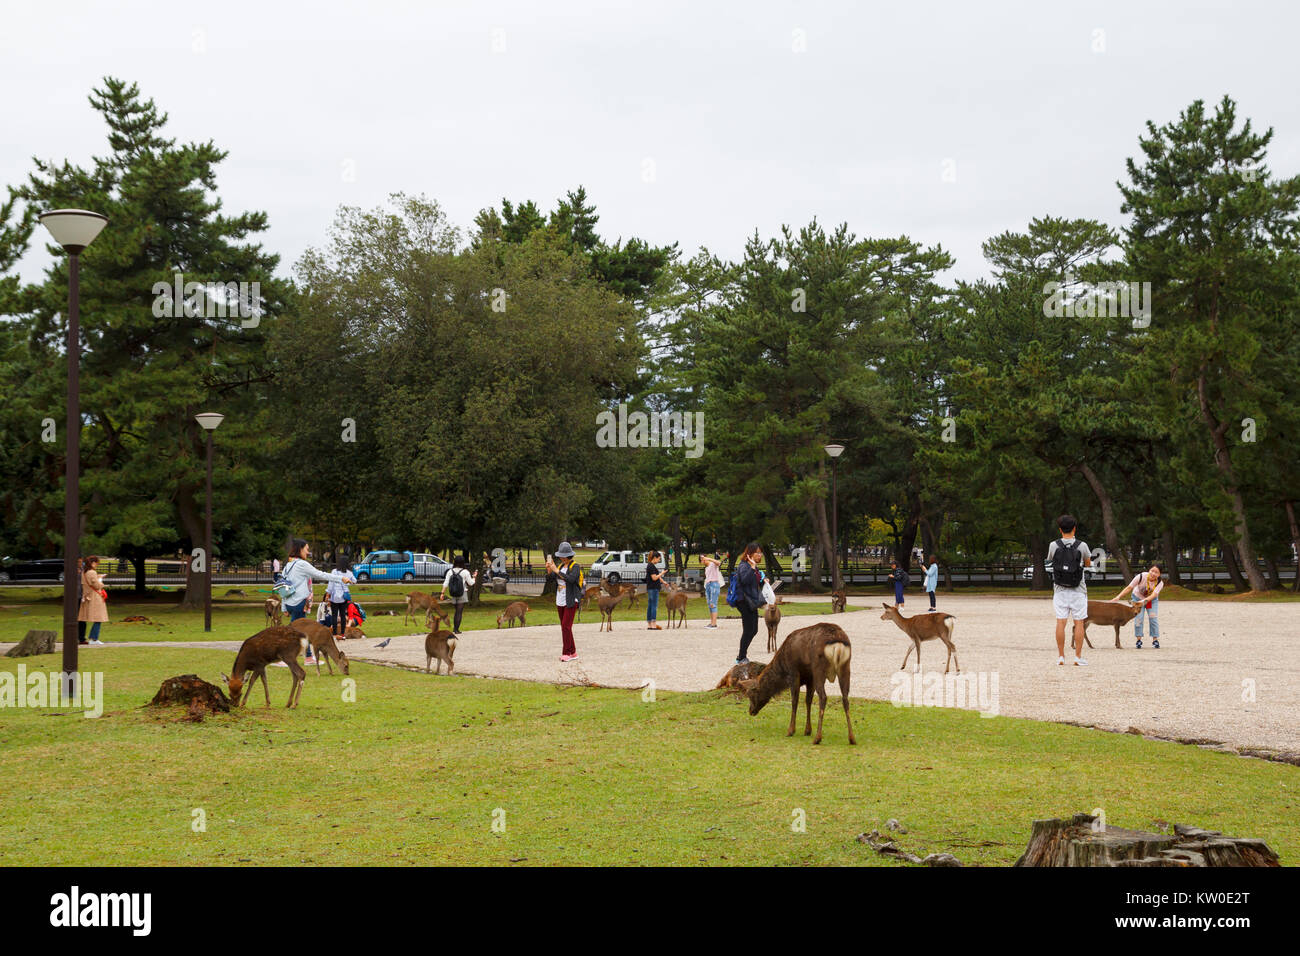 Visitors and wild deer in the city of Nara, a major tourism destination in Japan - Stock Image